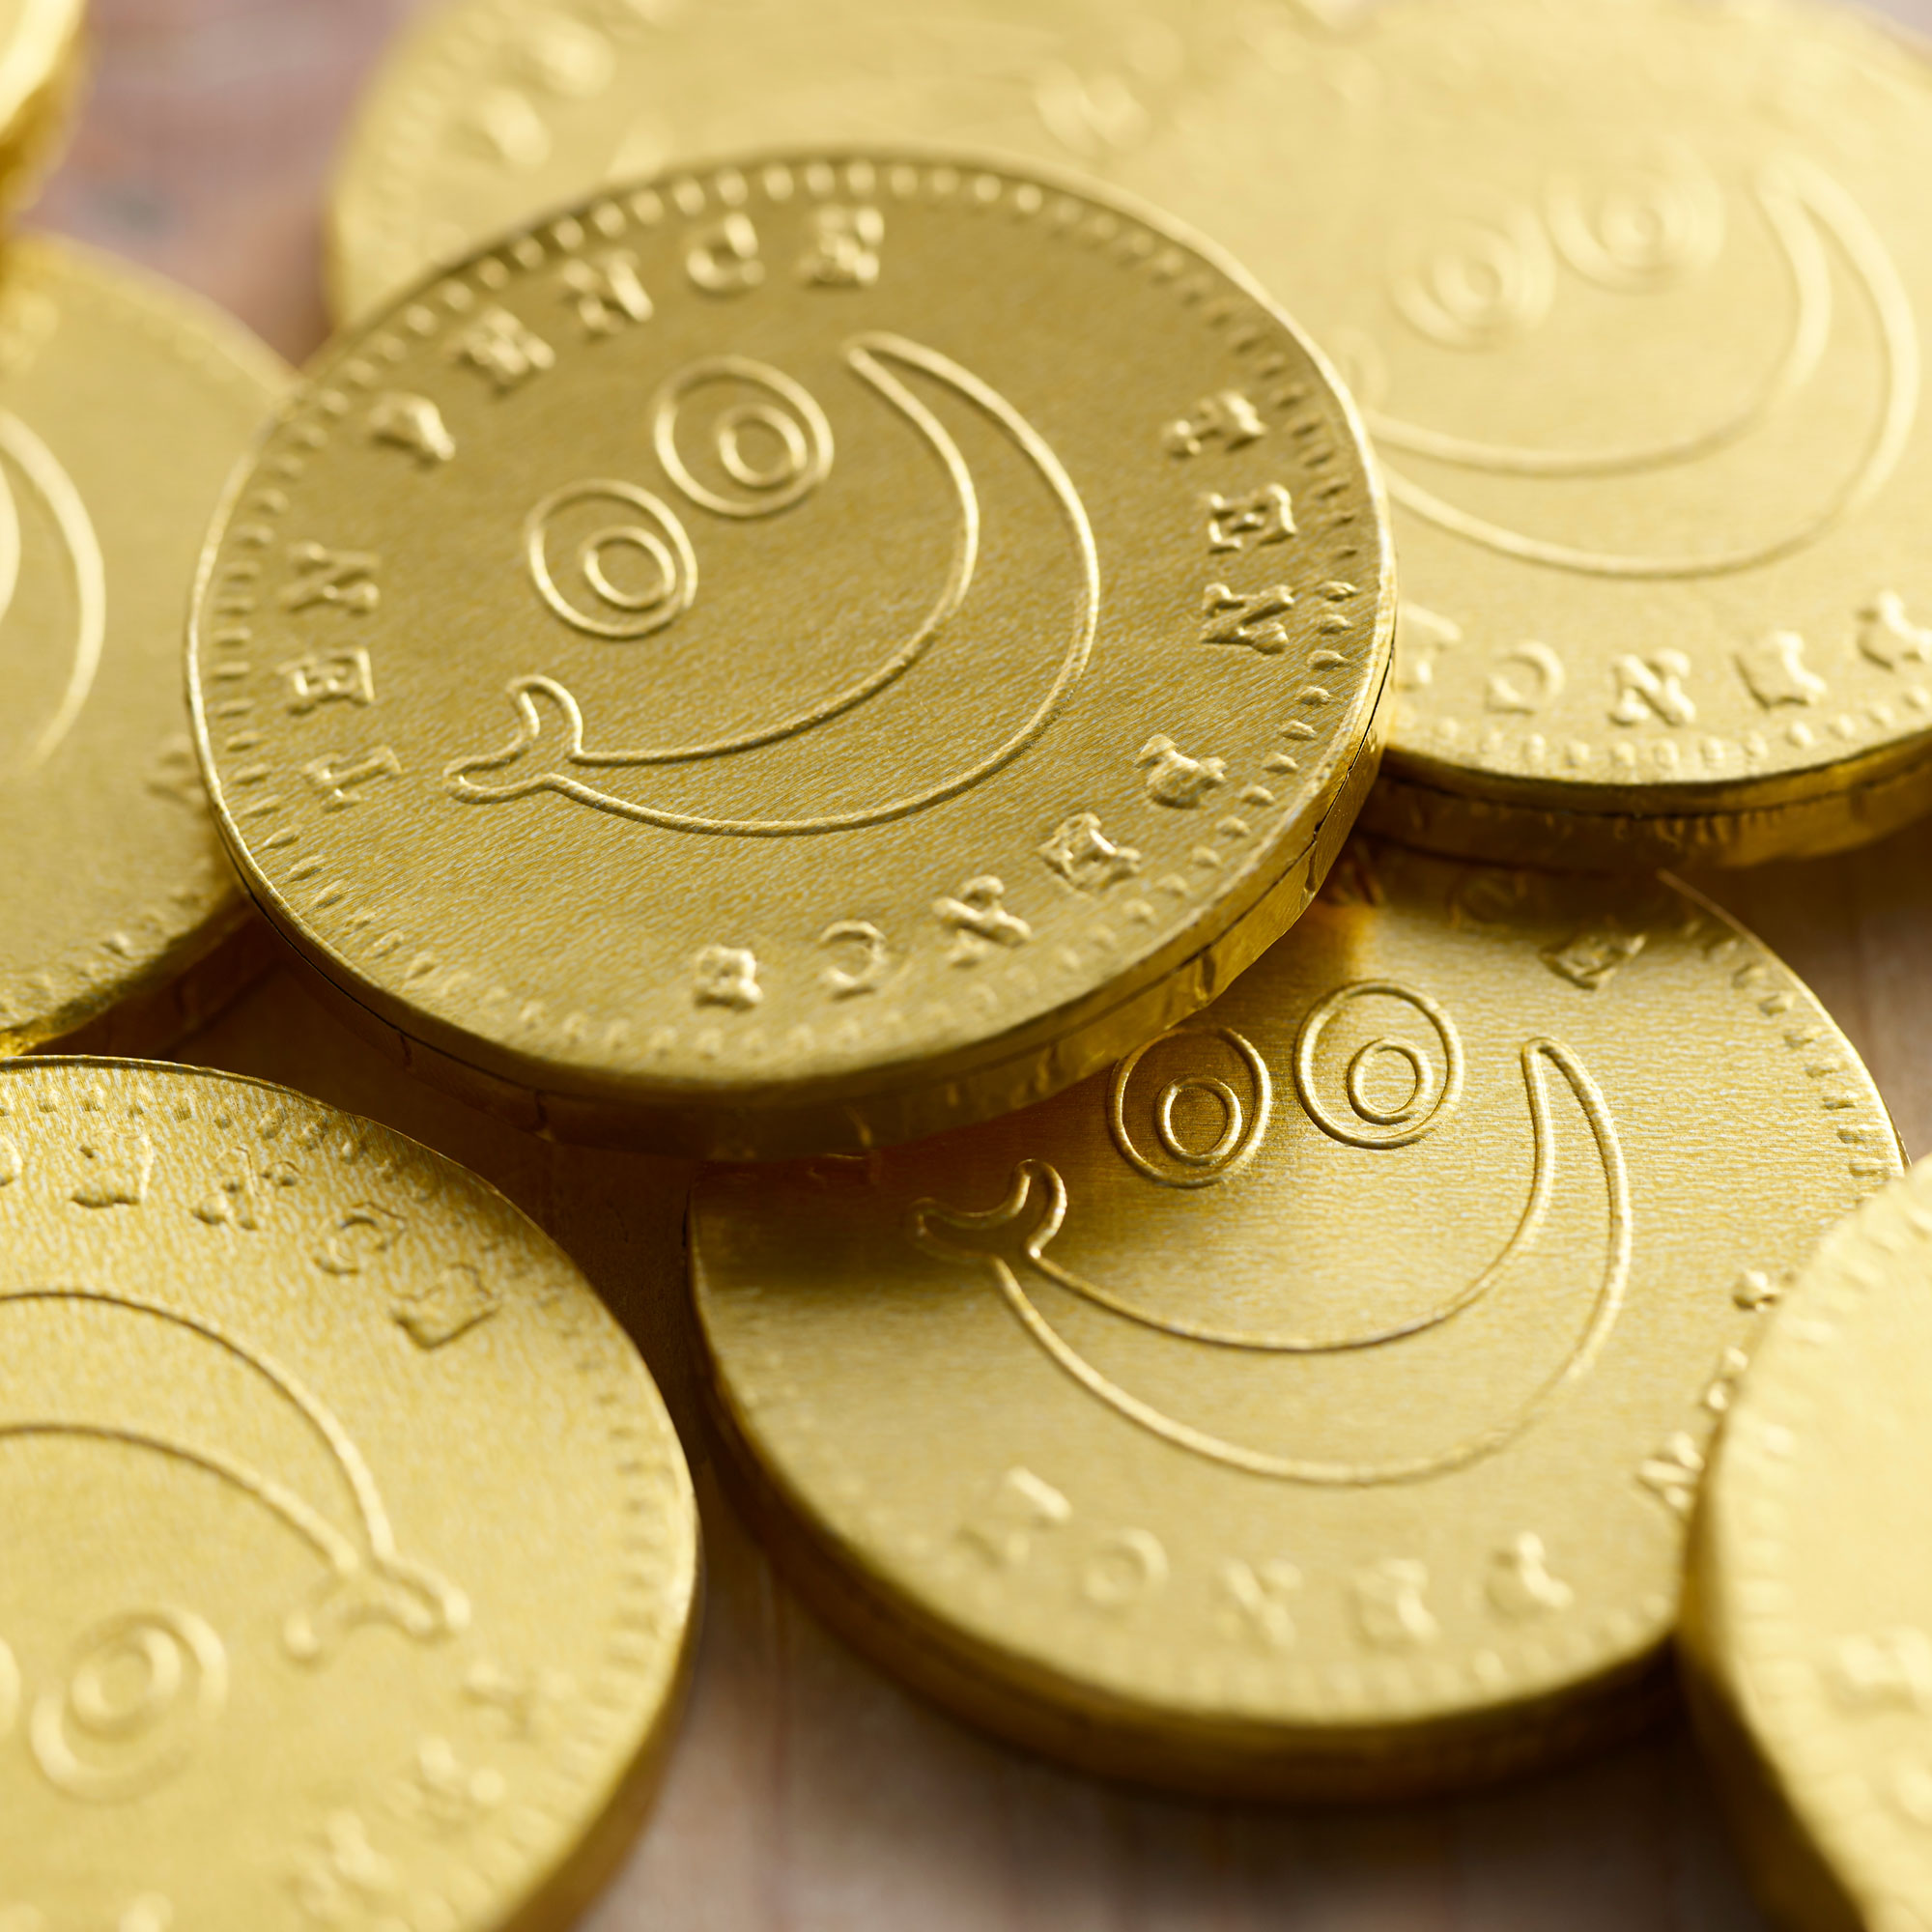 Smiles Chocolate Coins Buy Large Milk Chocolate Gold